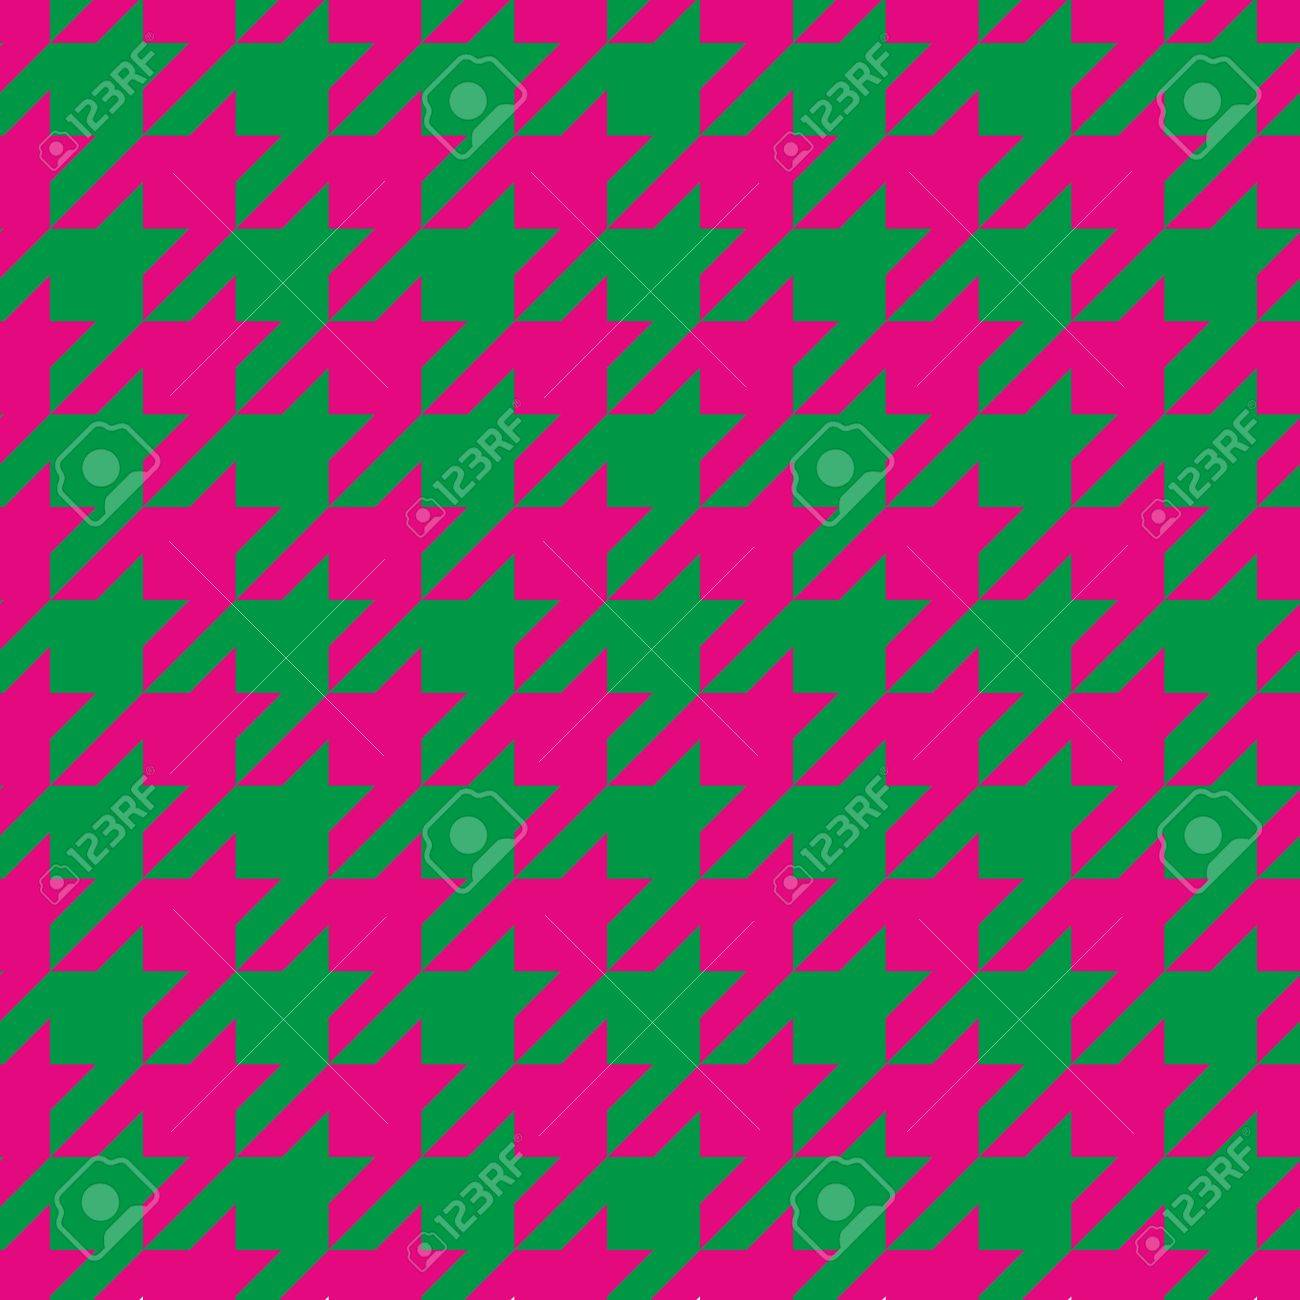 website colors neon : Houndstooth Seamless Vector Pattern Traditional Scottish Plaid Fabric For Colorful Website Background Or Desktop Wallpaper In